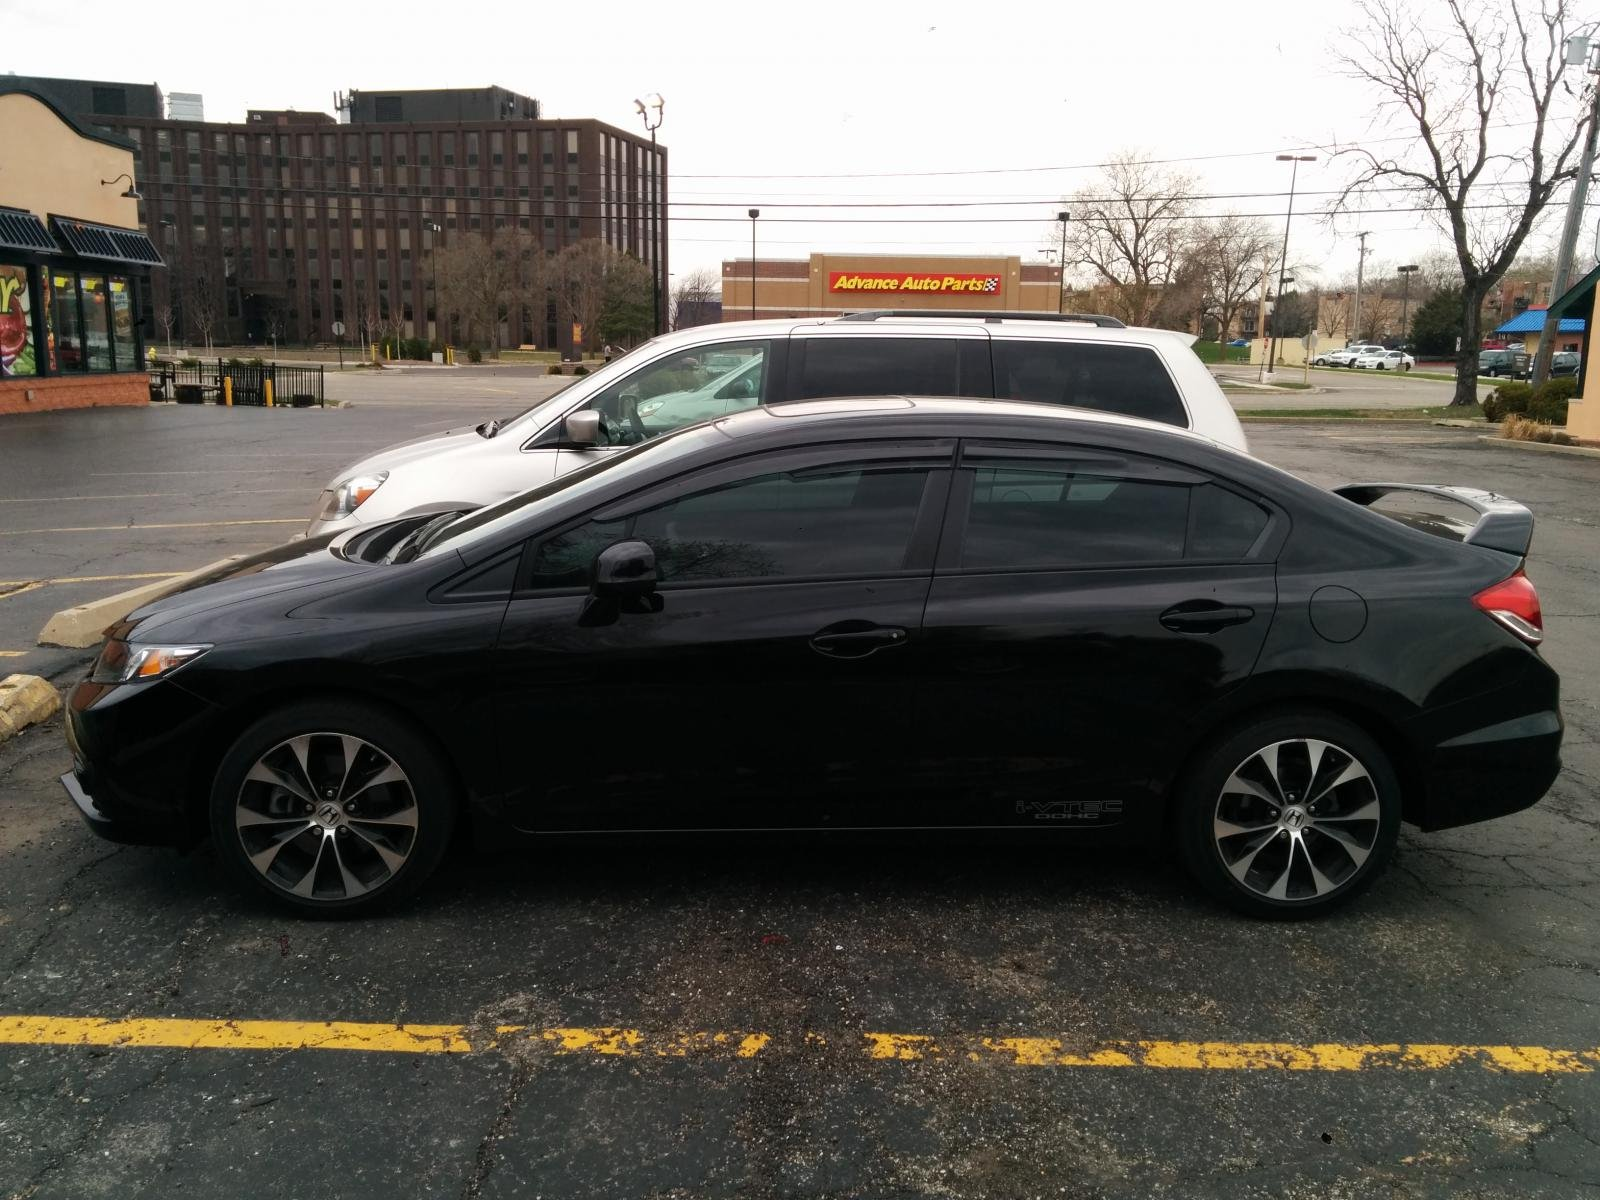 Genial 2013 Civic Si Sedan Crystal Black Tint, Shift Knob, Mugen  Visor Img_20140421_170142.